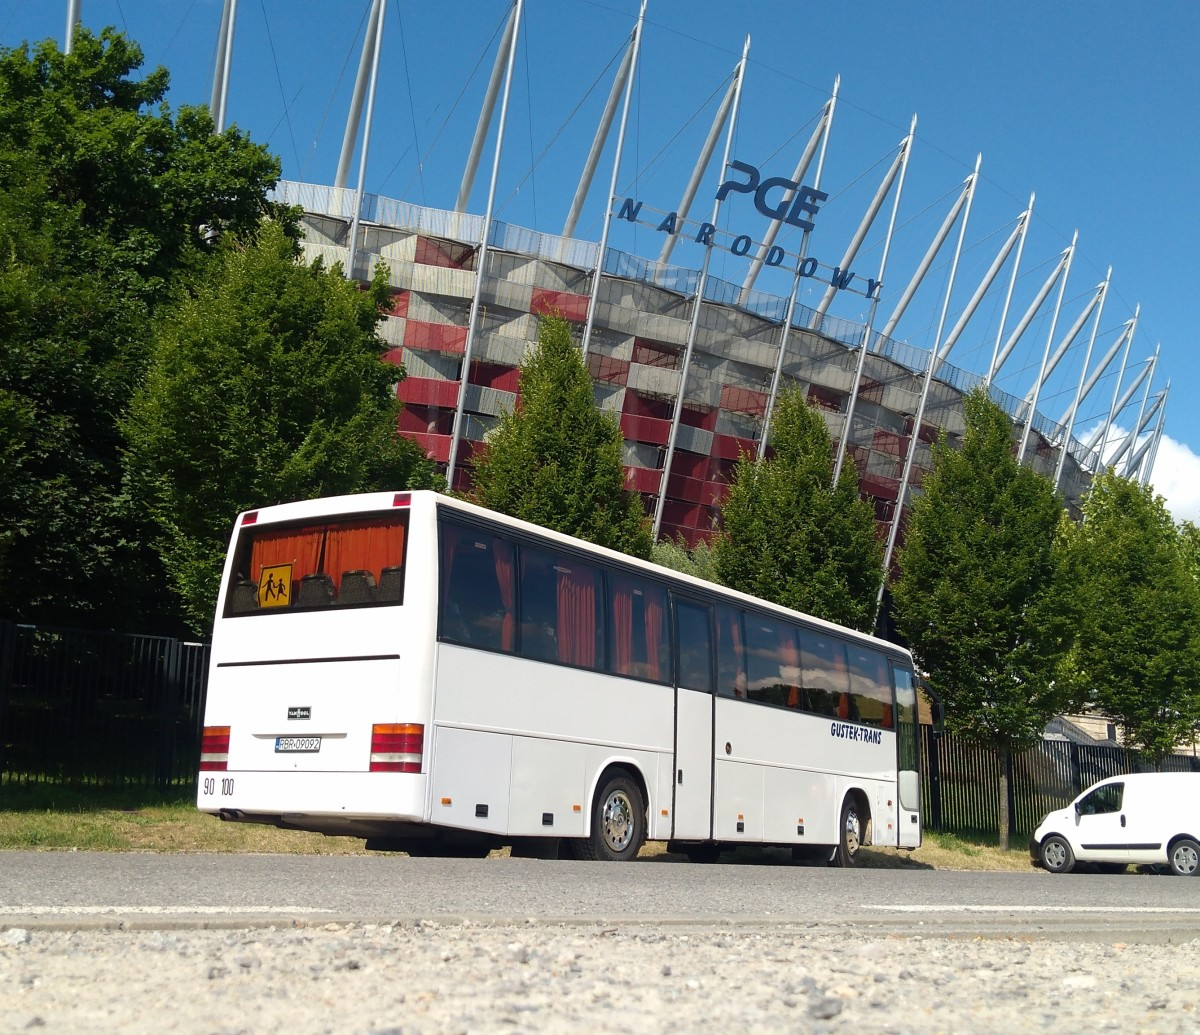 Bus and Stadium in background